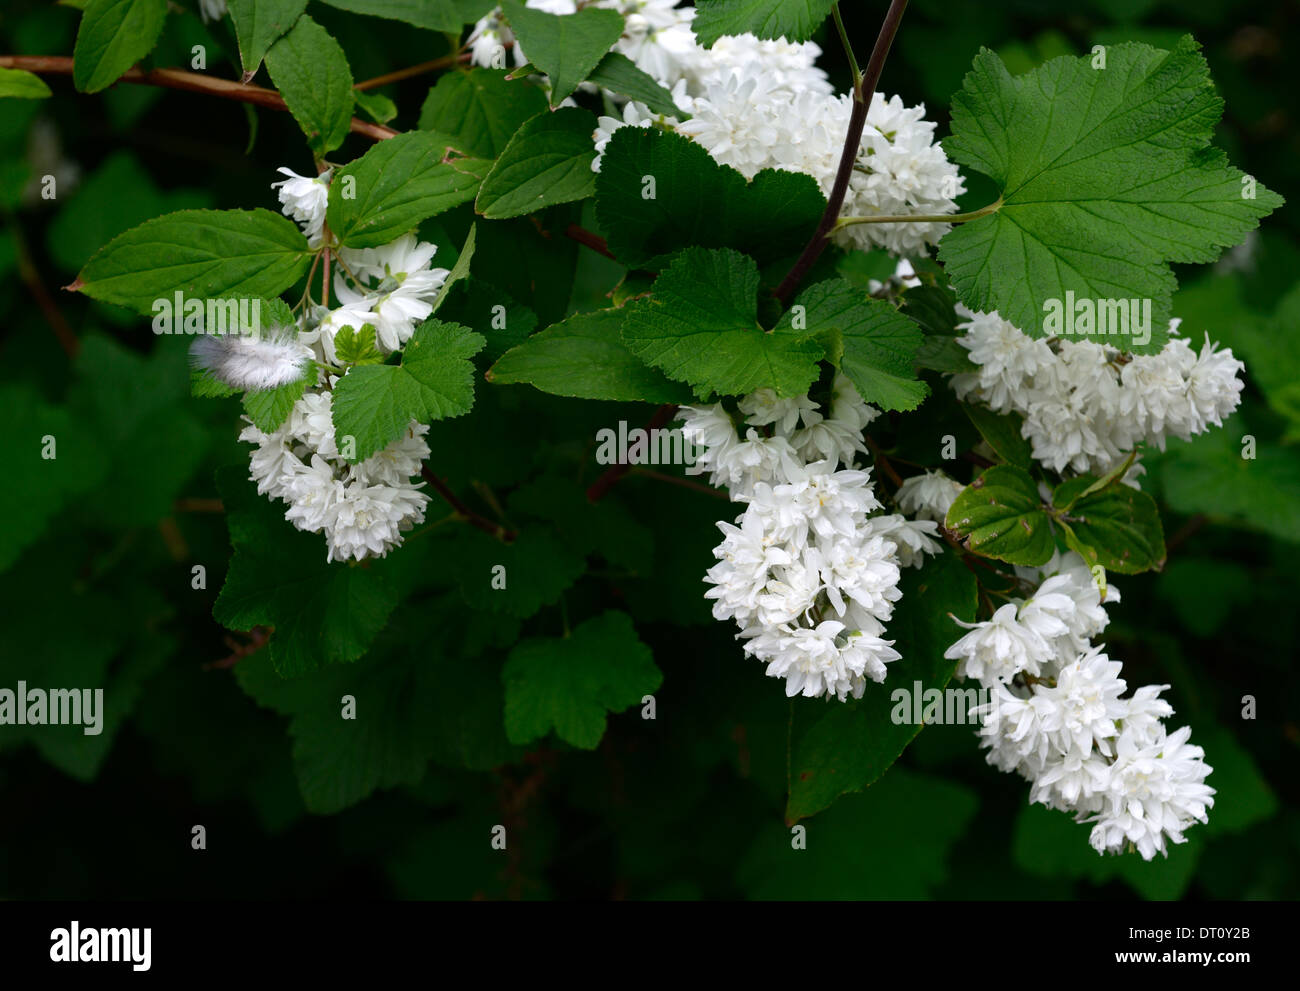 White Flowering Deutzia Shrub Stock Photos White Flowering Deutzia